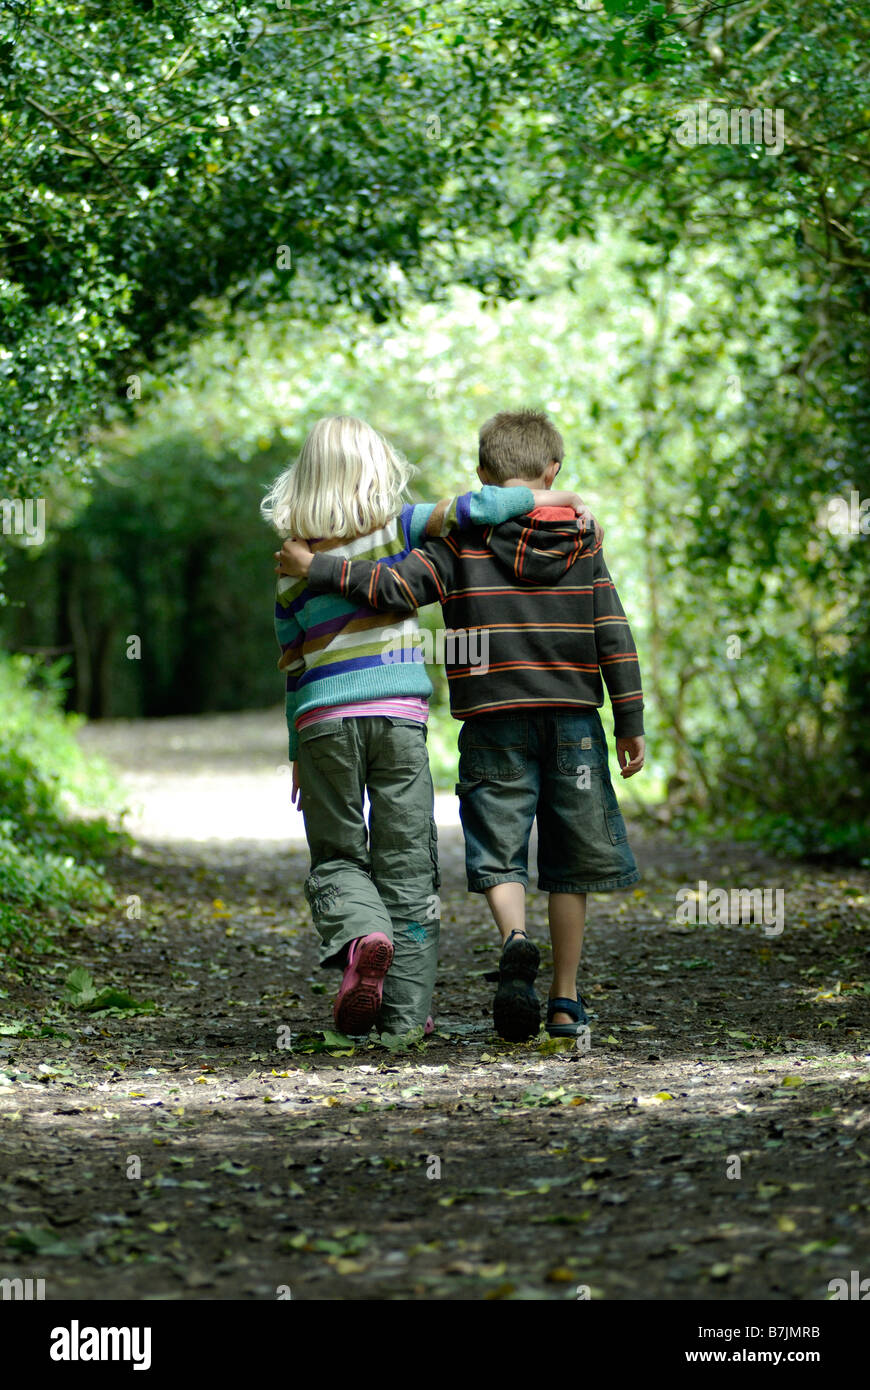 Walking together through the main education